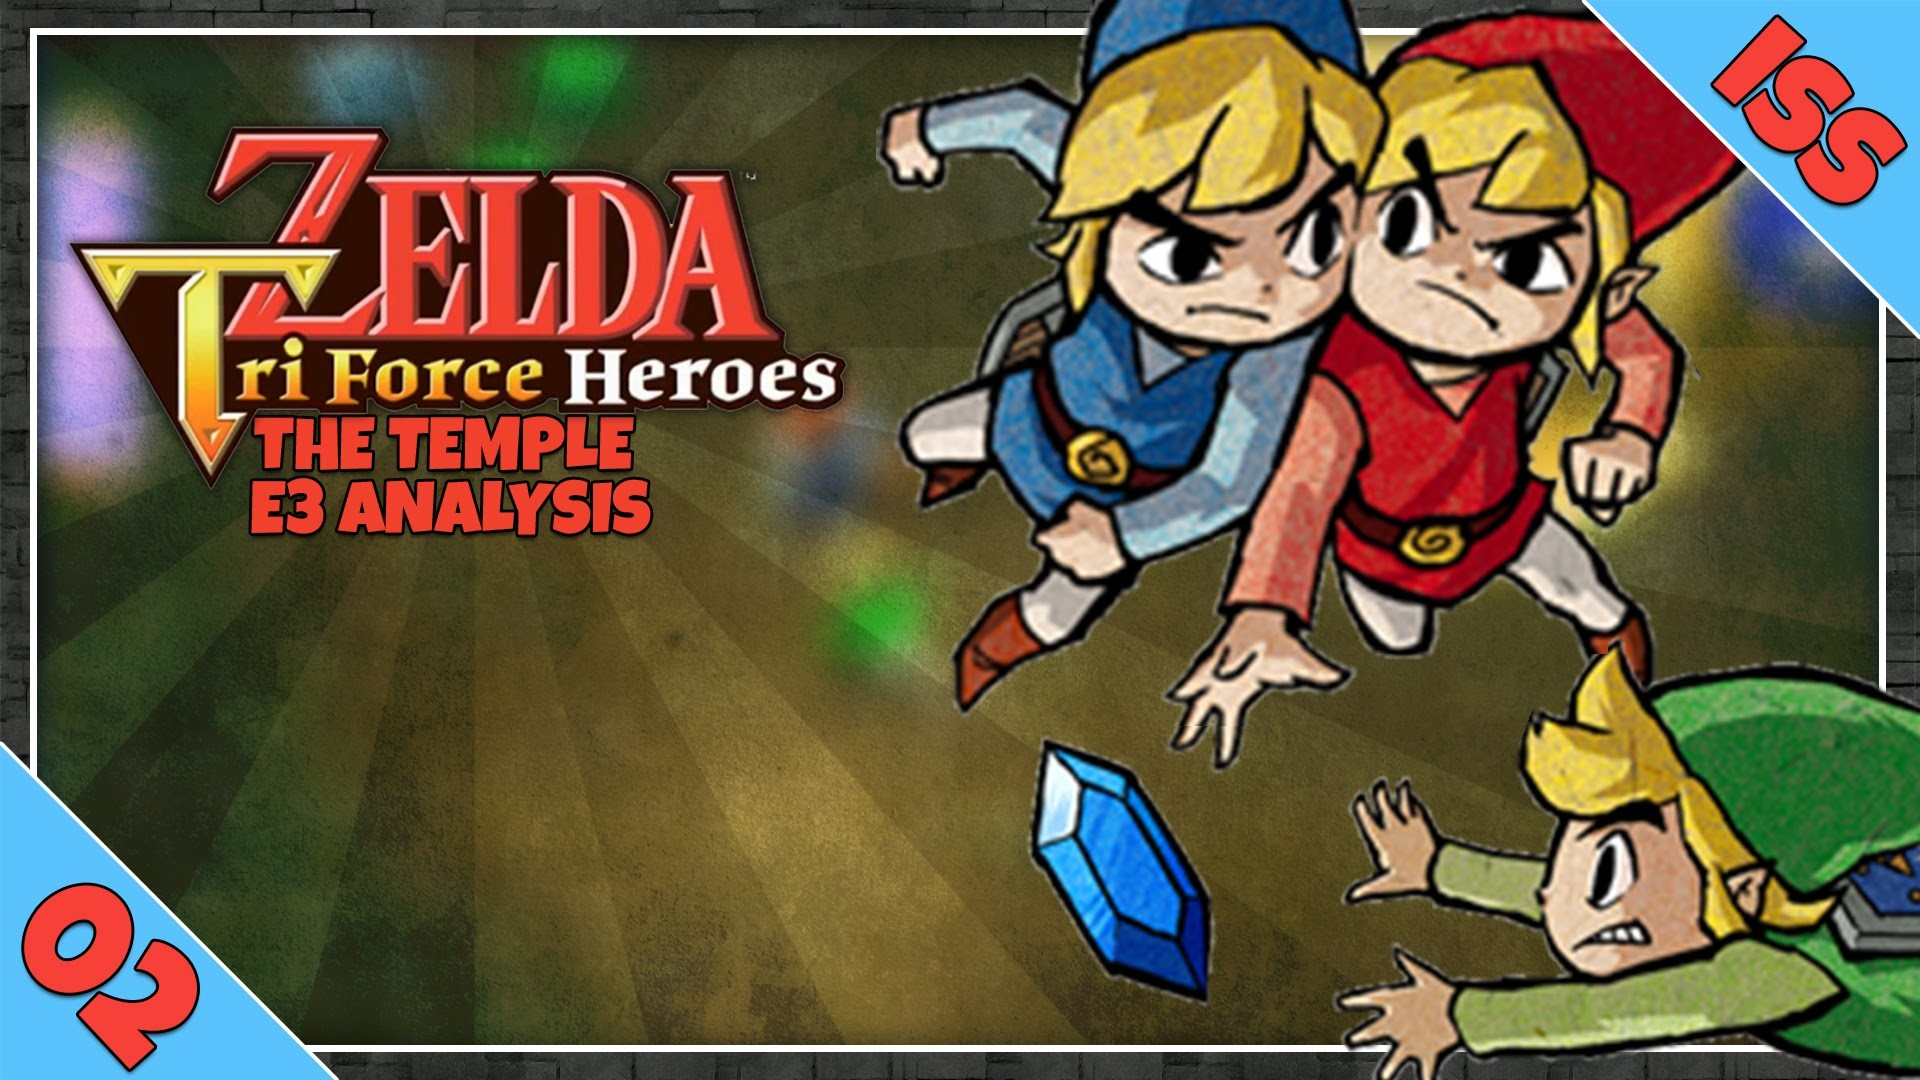 Res: 1920x1080, The Legend of Zelda: Triforce Heroes Gameplay Analysis Part 2 | The Temple